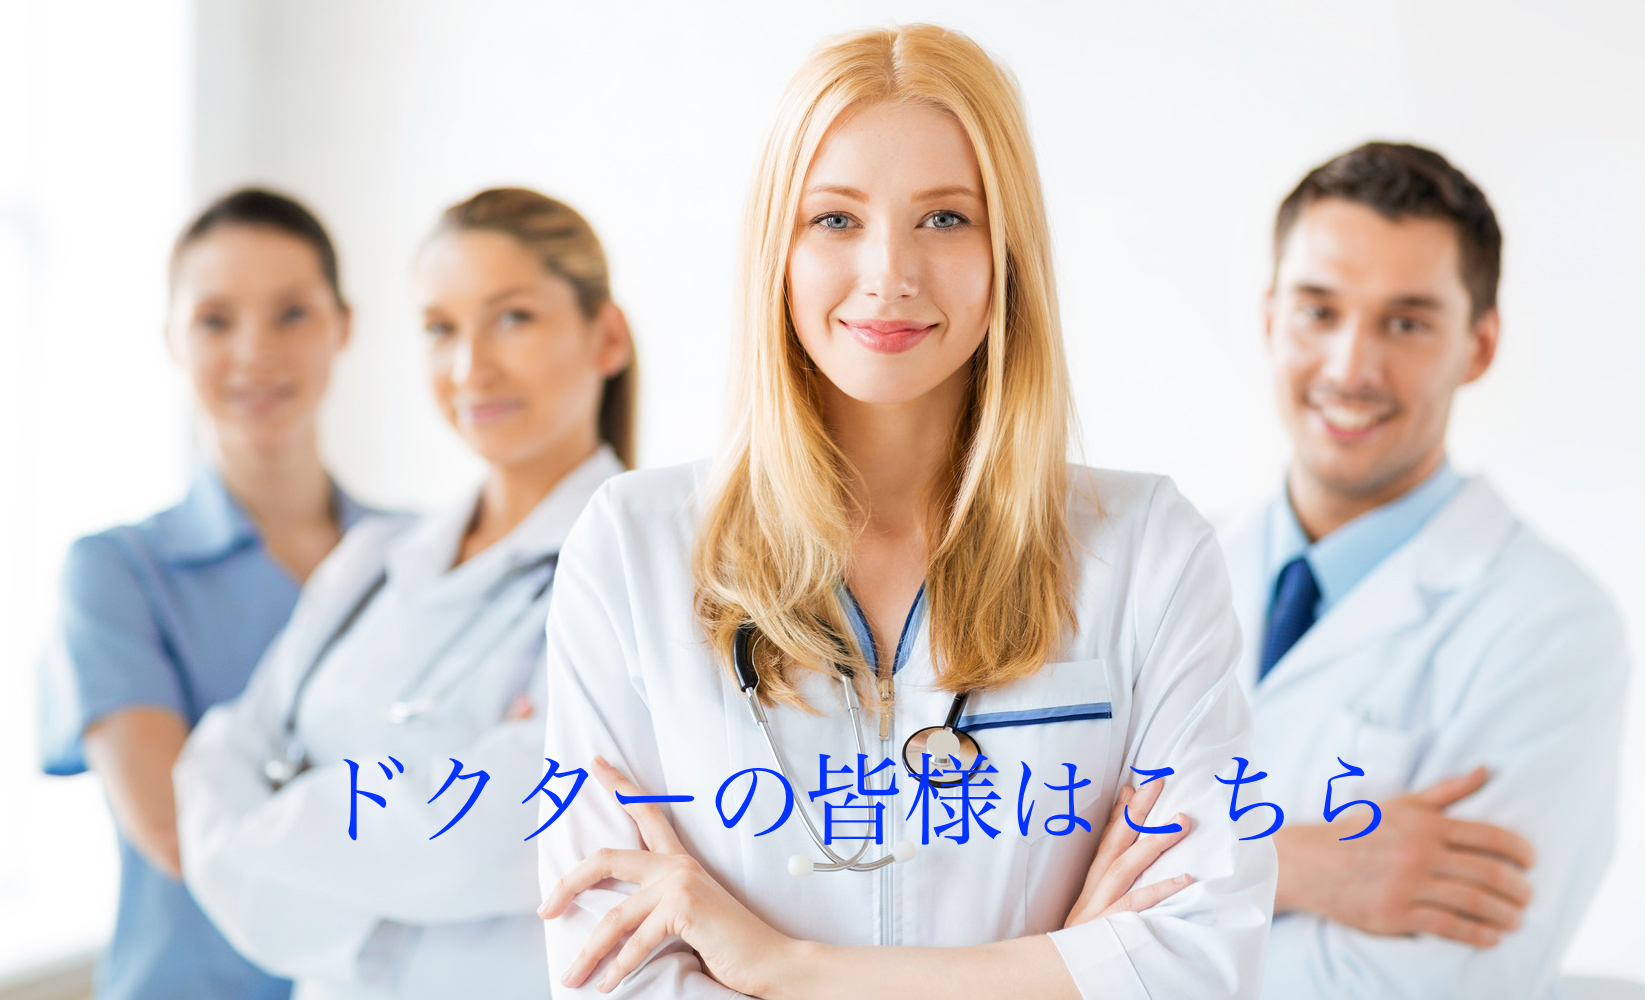 photodune-5079010-female-doctor-in-front-of-medical-group-m.jpg